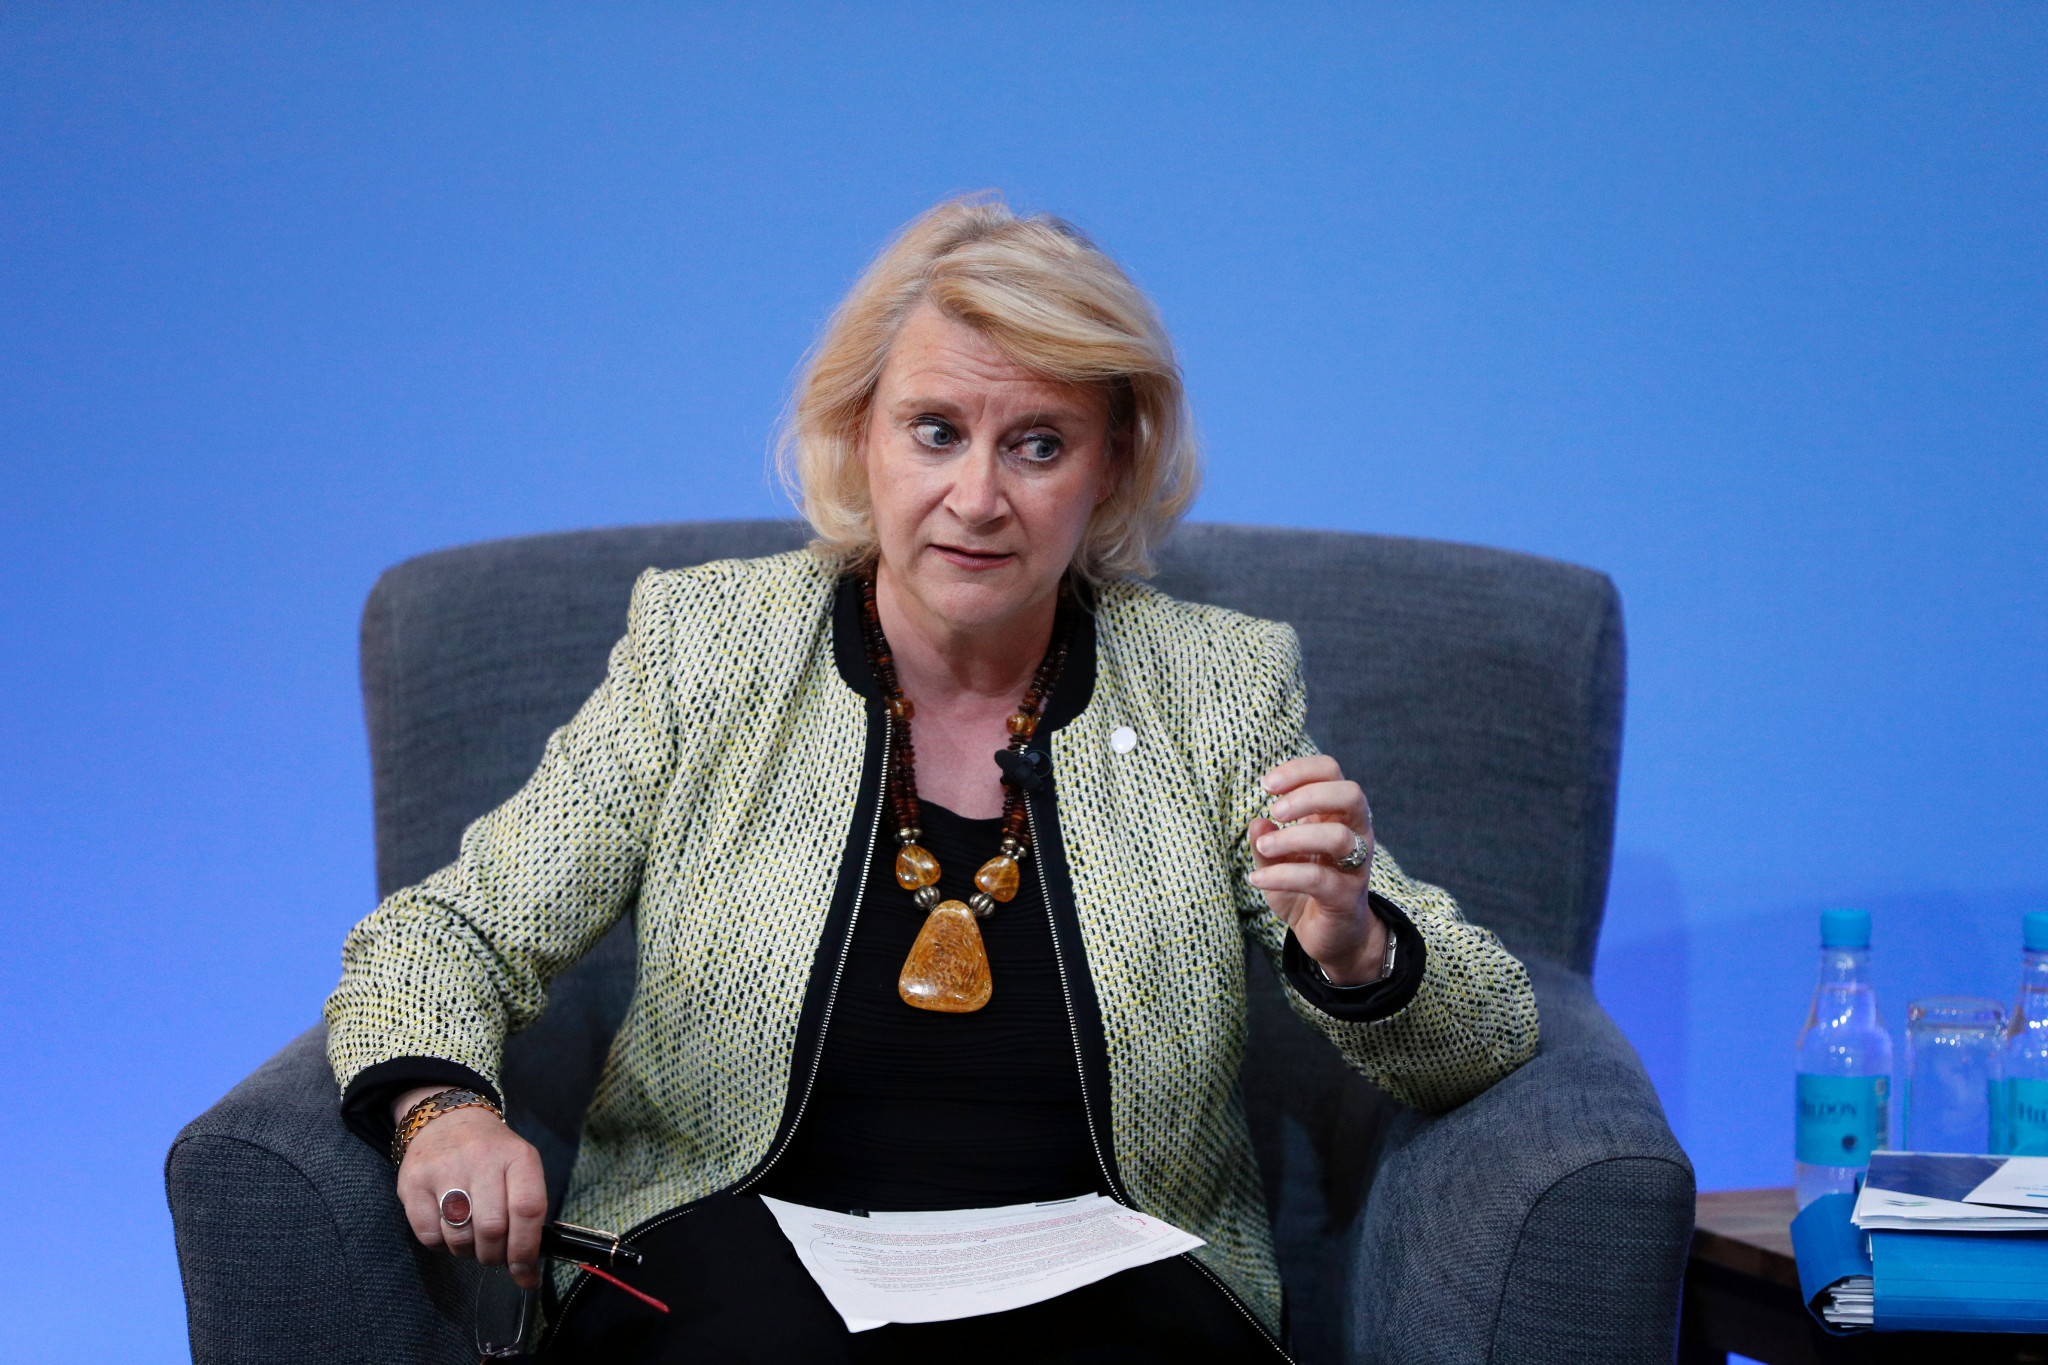 IOC chief ethics and compliance officer Päquerette Girard Zappelli has defended the organisation's ethics proceedings following recent criticism about its independence ©Getty Images